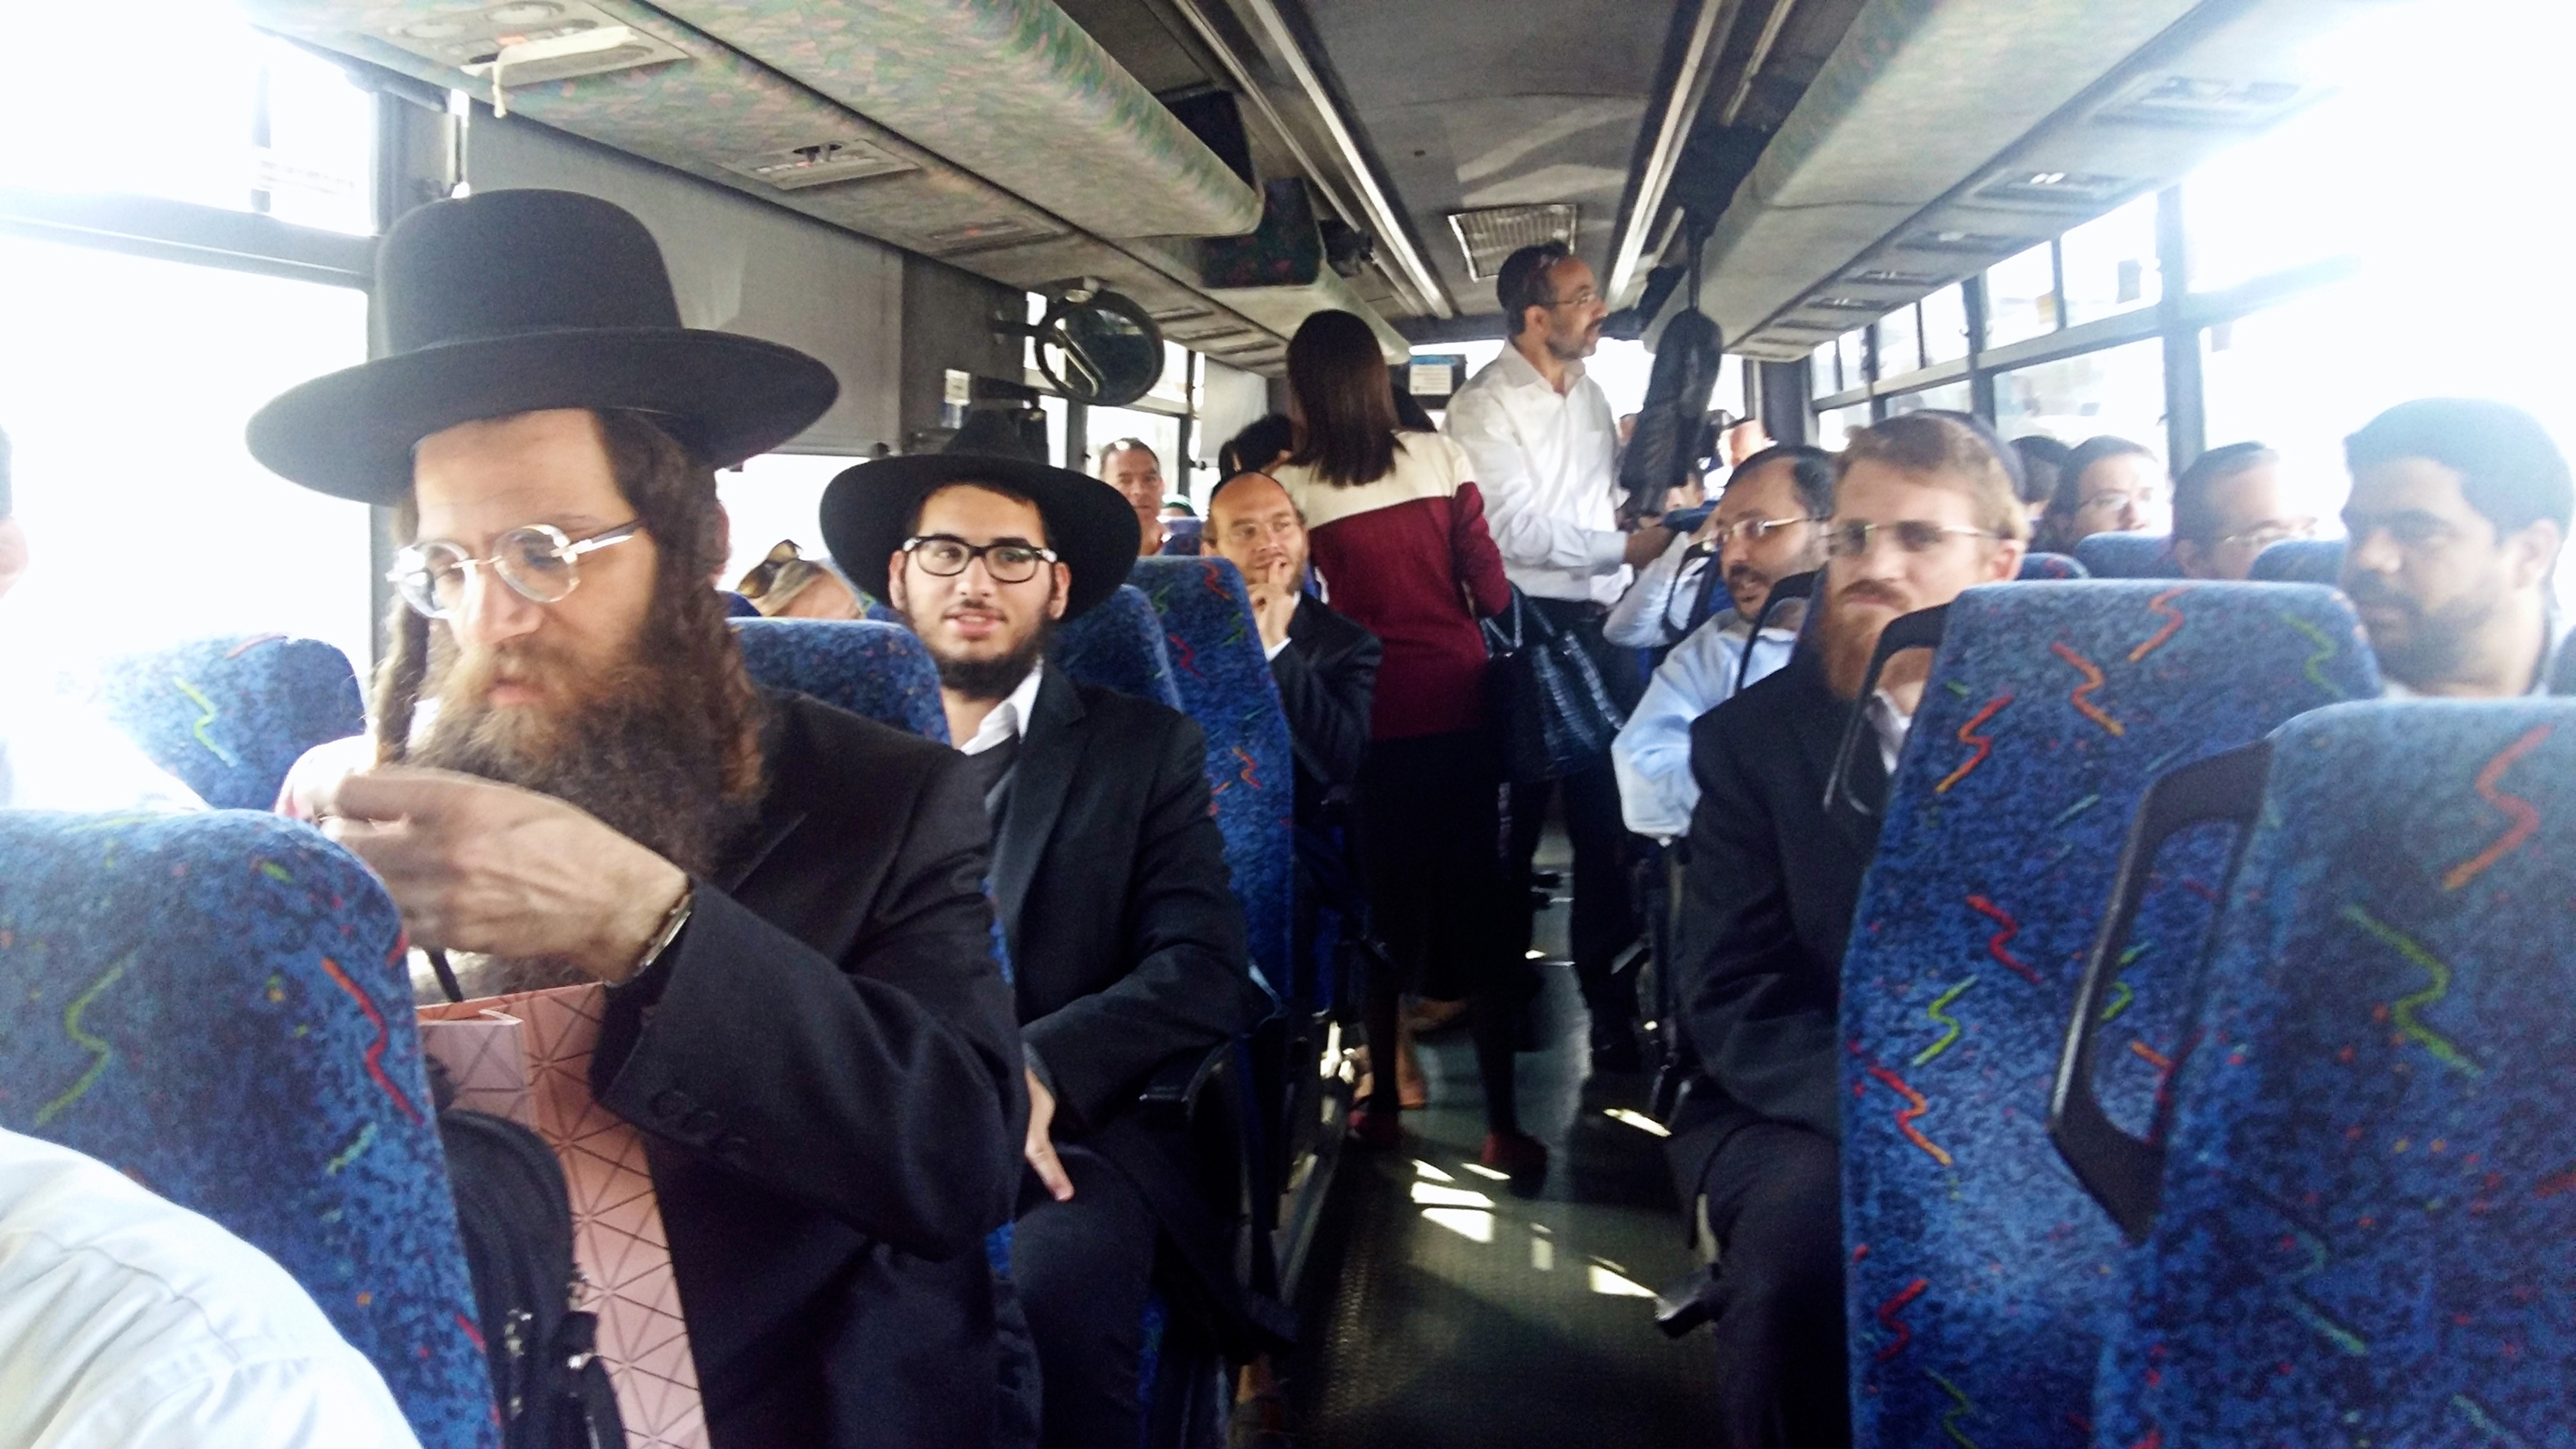 As Israel's Ultra-Orthodox Enter The Workforce, High-Tech Beckons